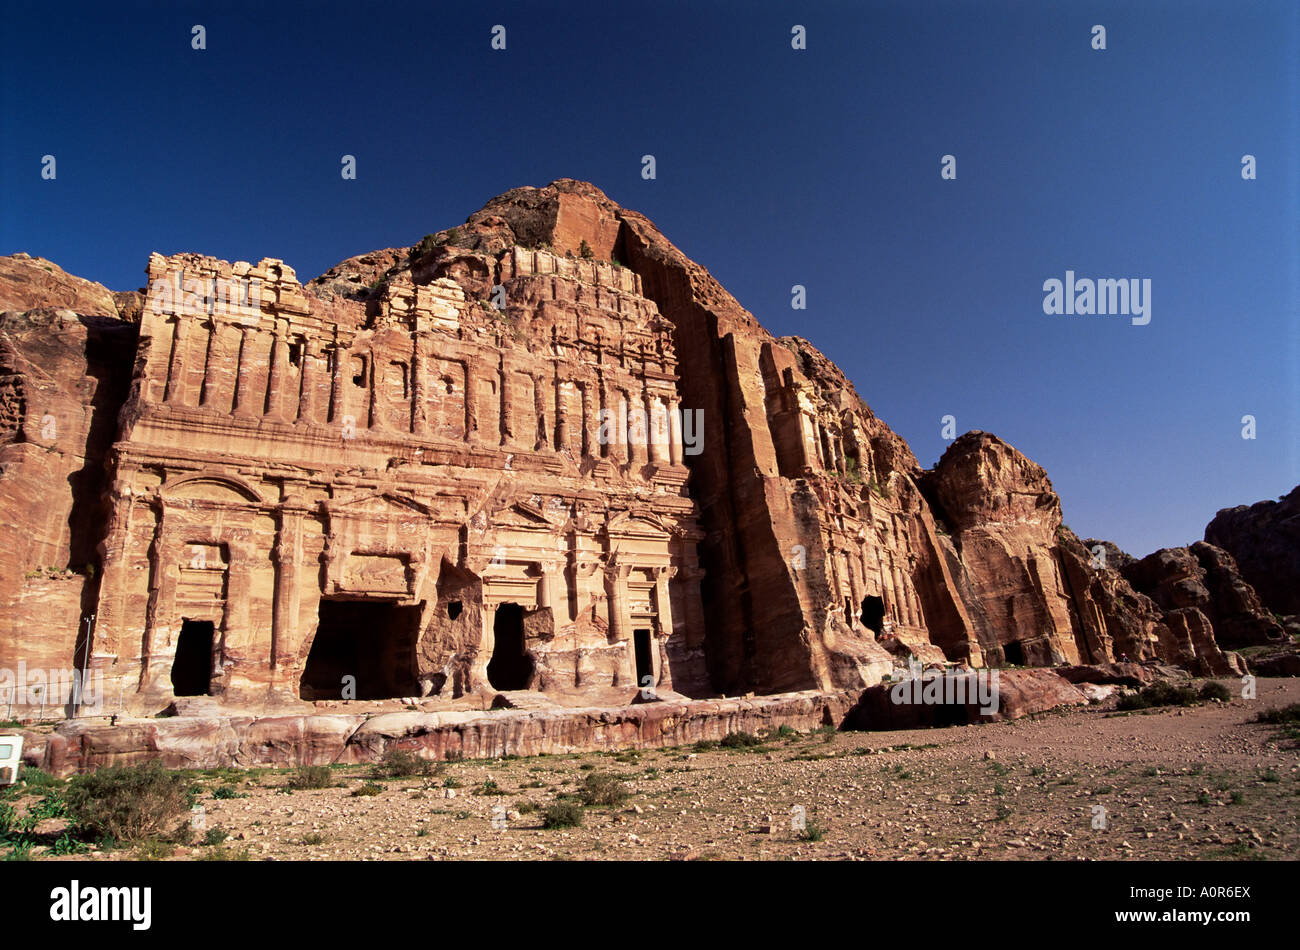 Palace Tomb in the chain of royal tombs Petra UNESCO World Heritage Site Jordan Middle East Stock Photo